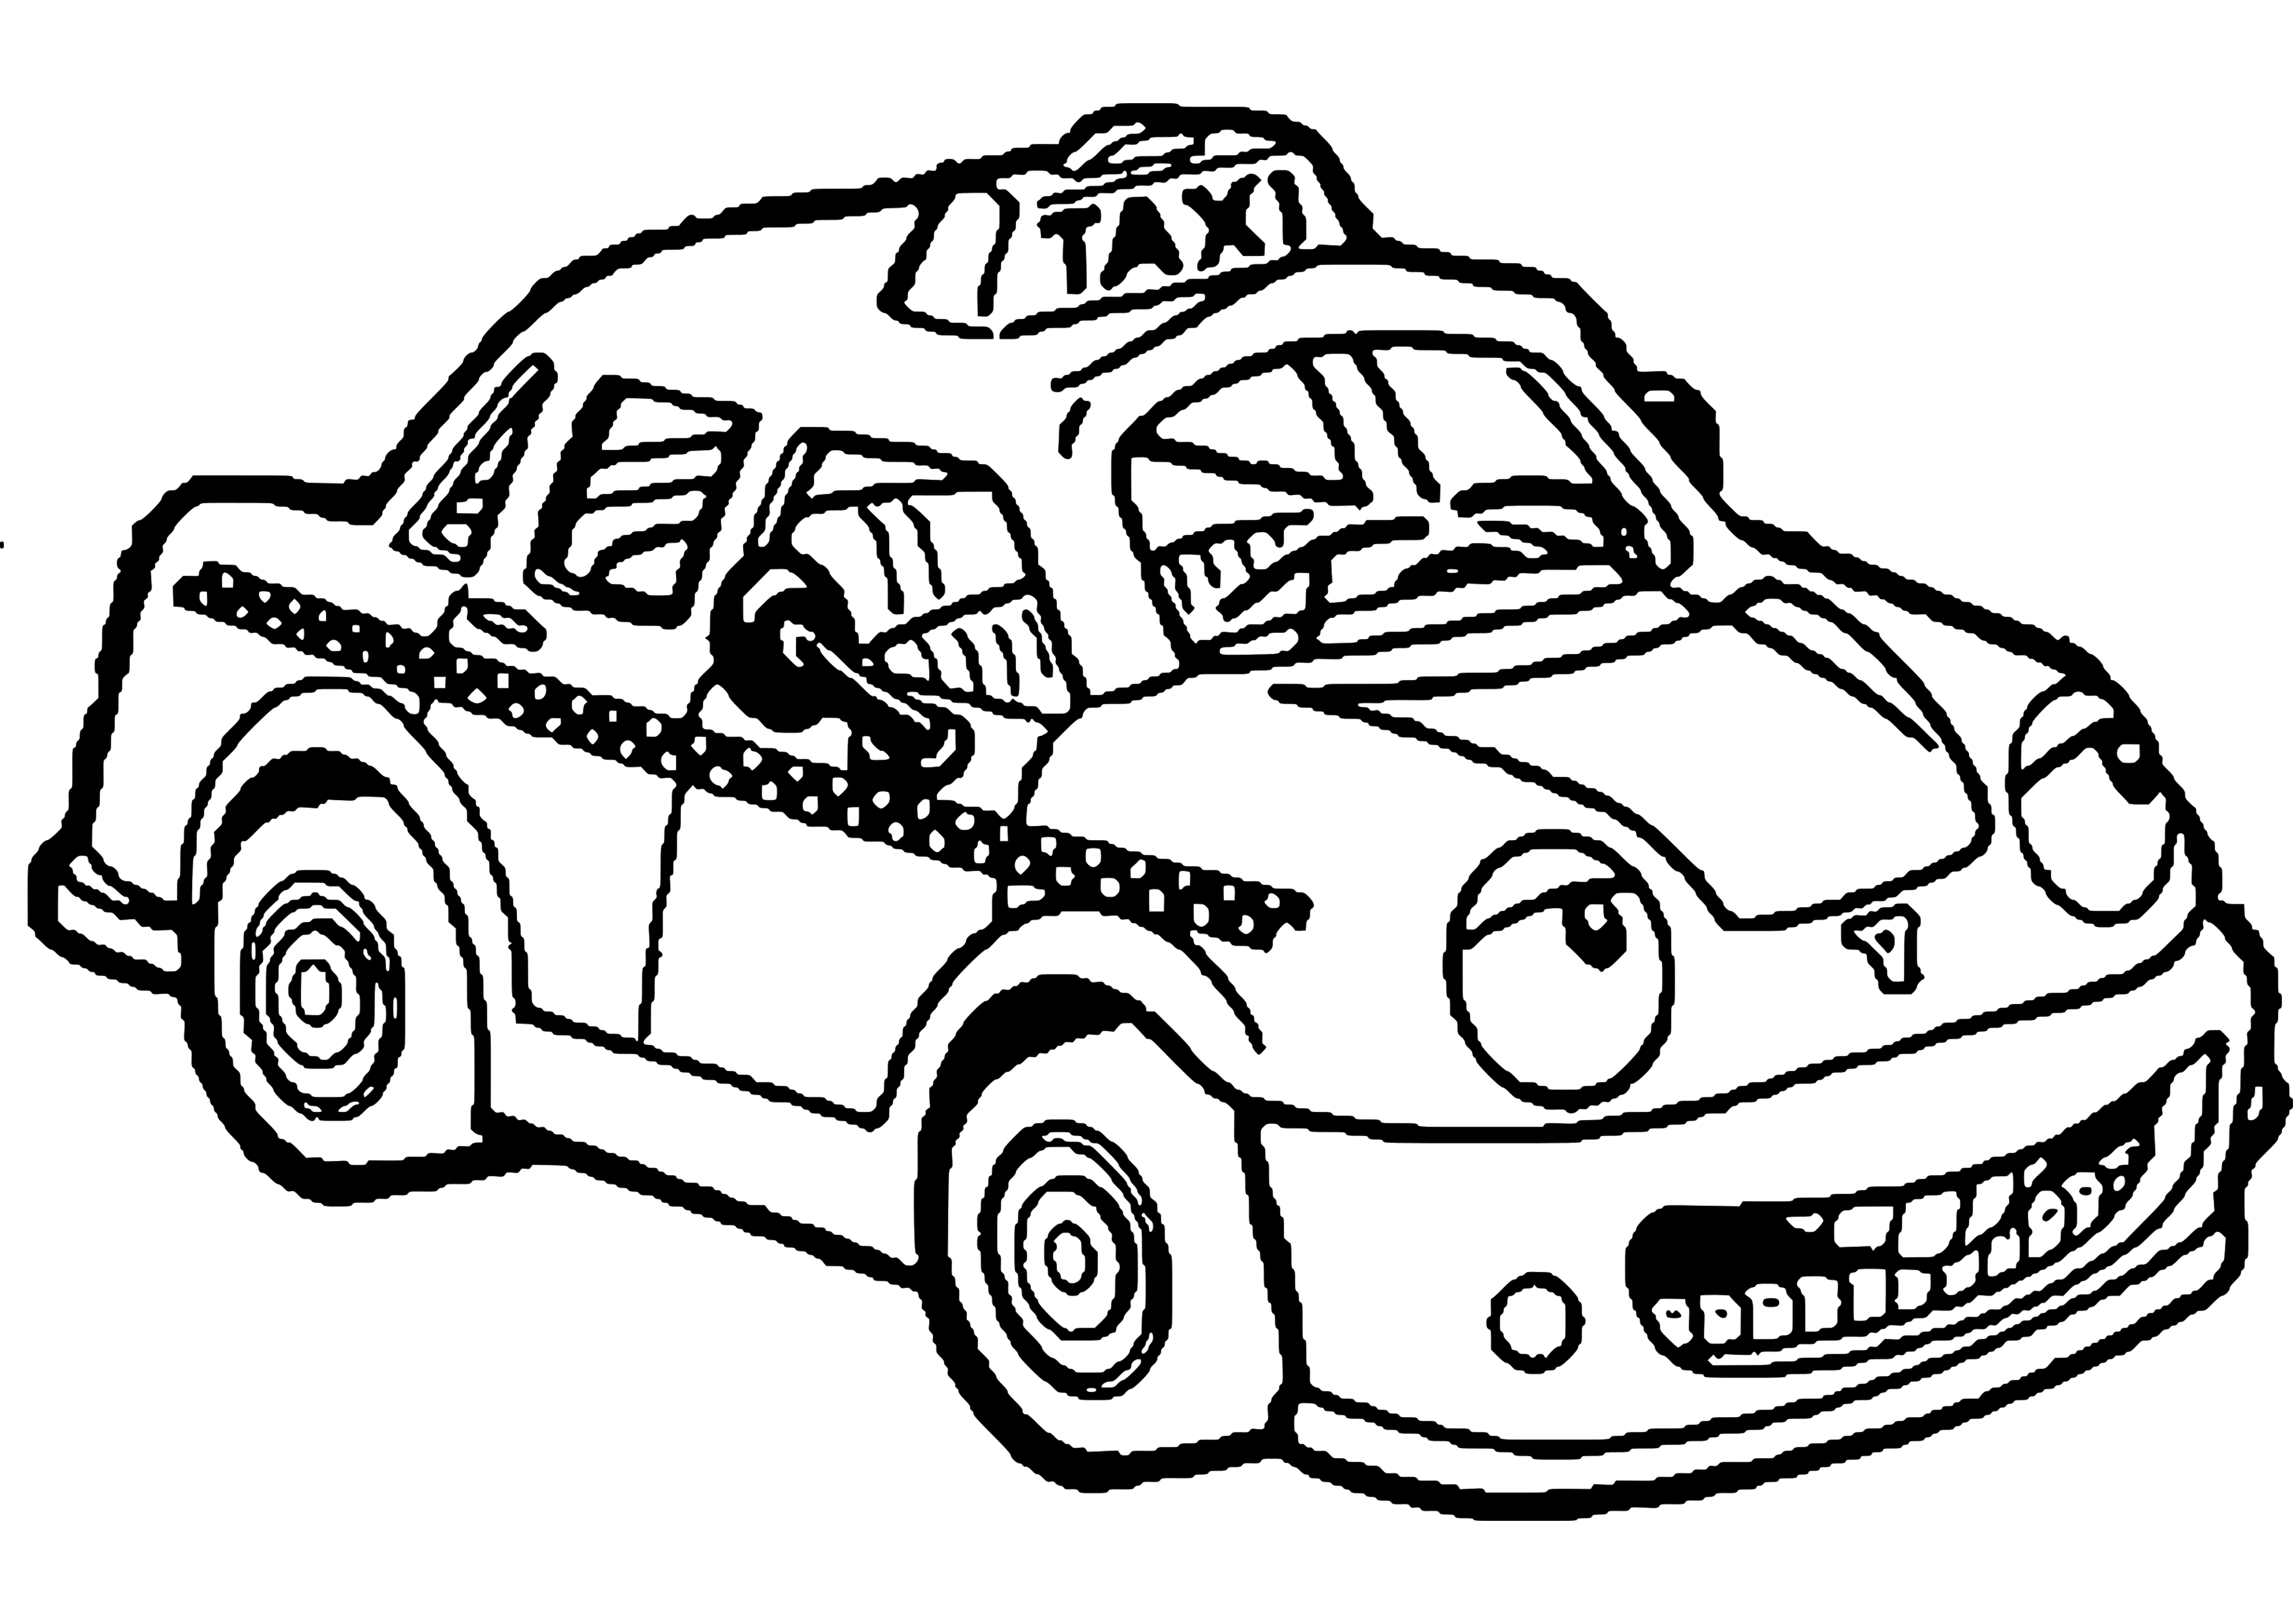 taxi colouring pages taxi colouring pages taxi pages colouring